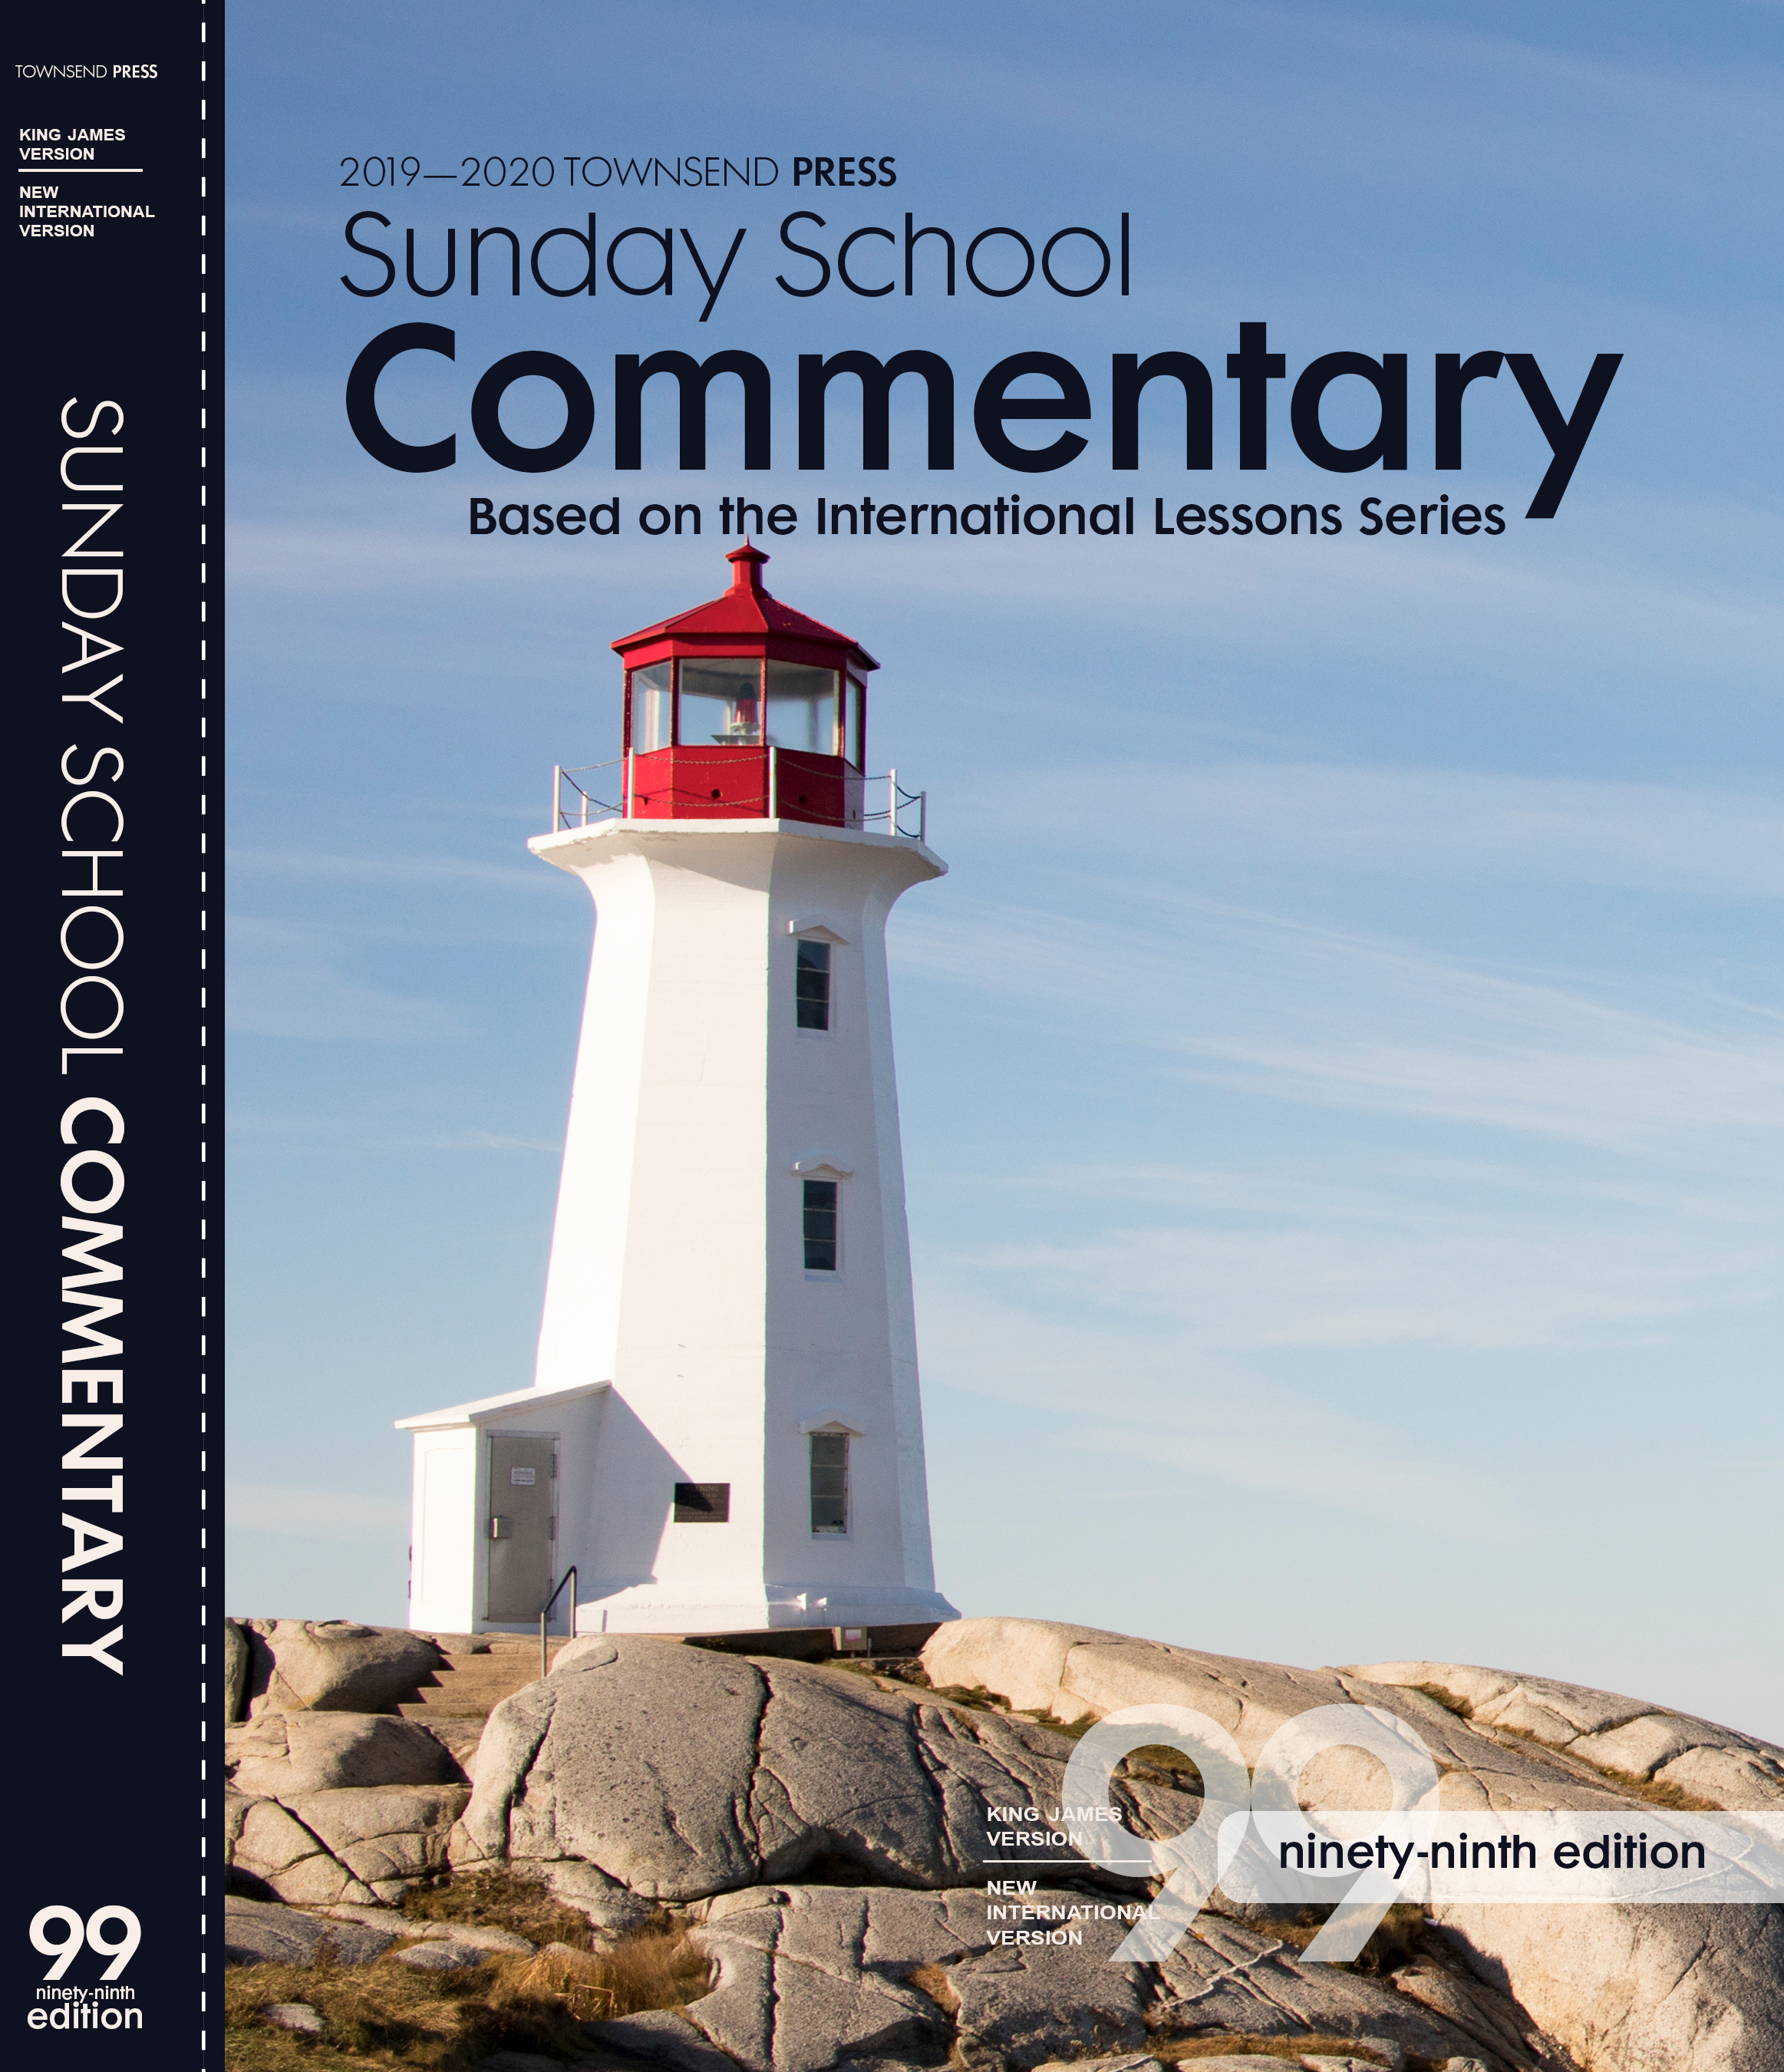 2019-2020 Townsend Press Sunday School Commentary 99th Edition